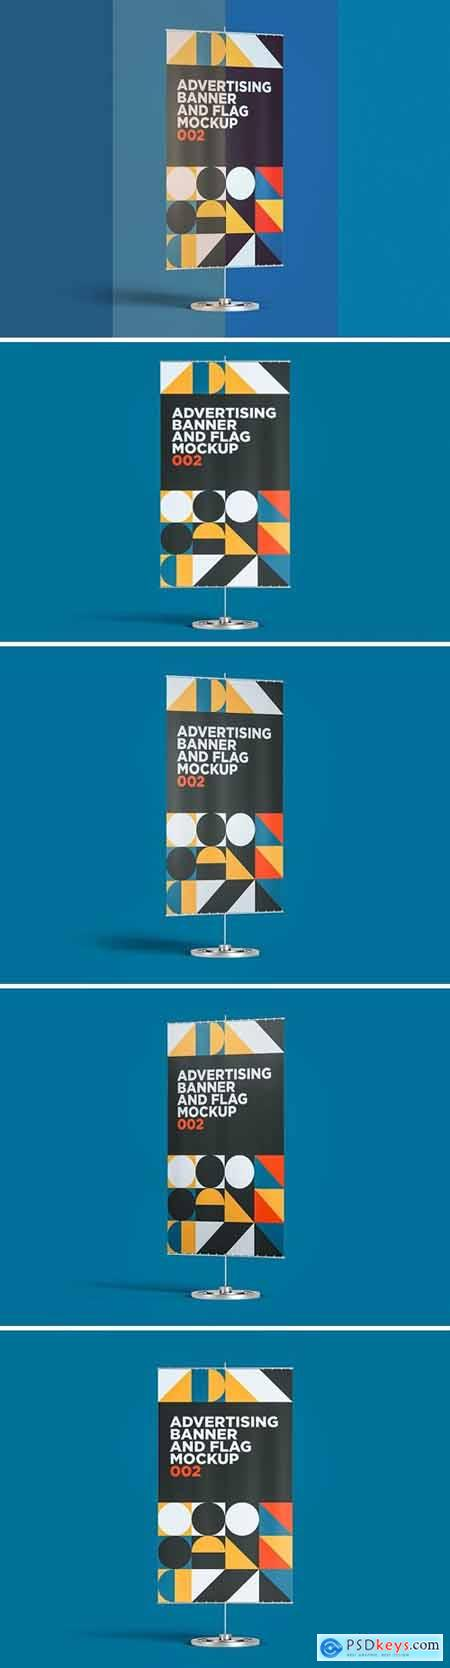 Advertising Banner And Flag Mockup 002